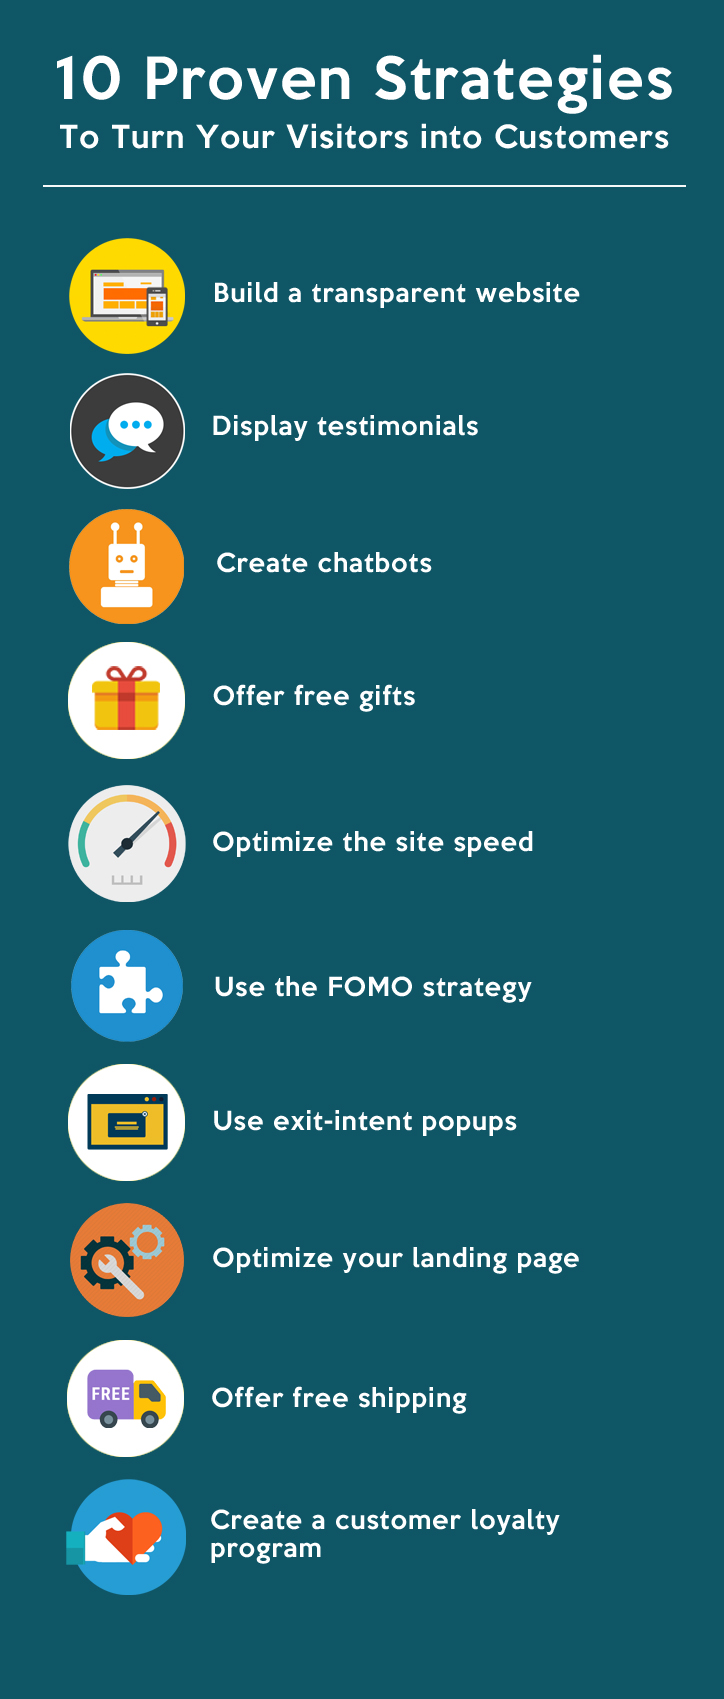 10 Proven Strategies to Turn Your Visitors into Customers - Infographic